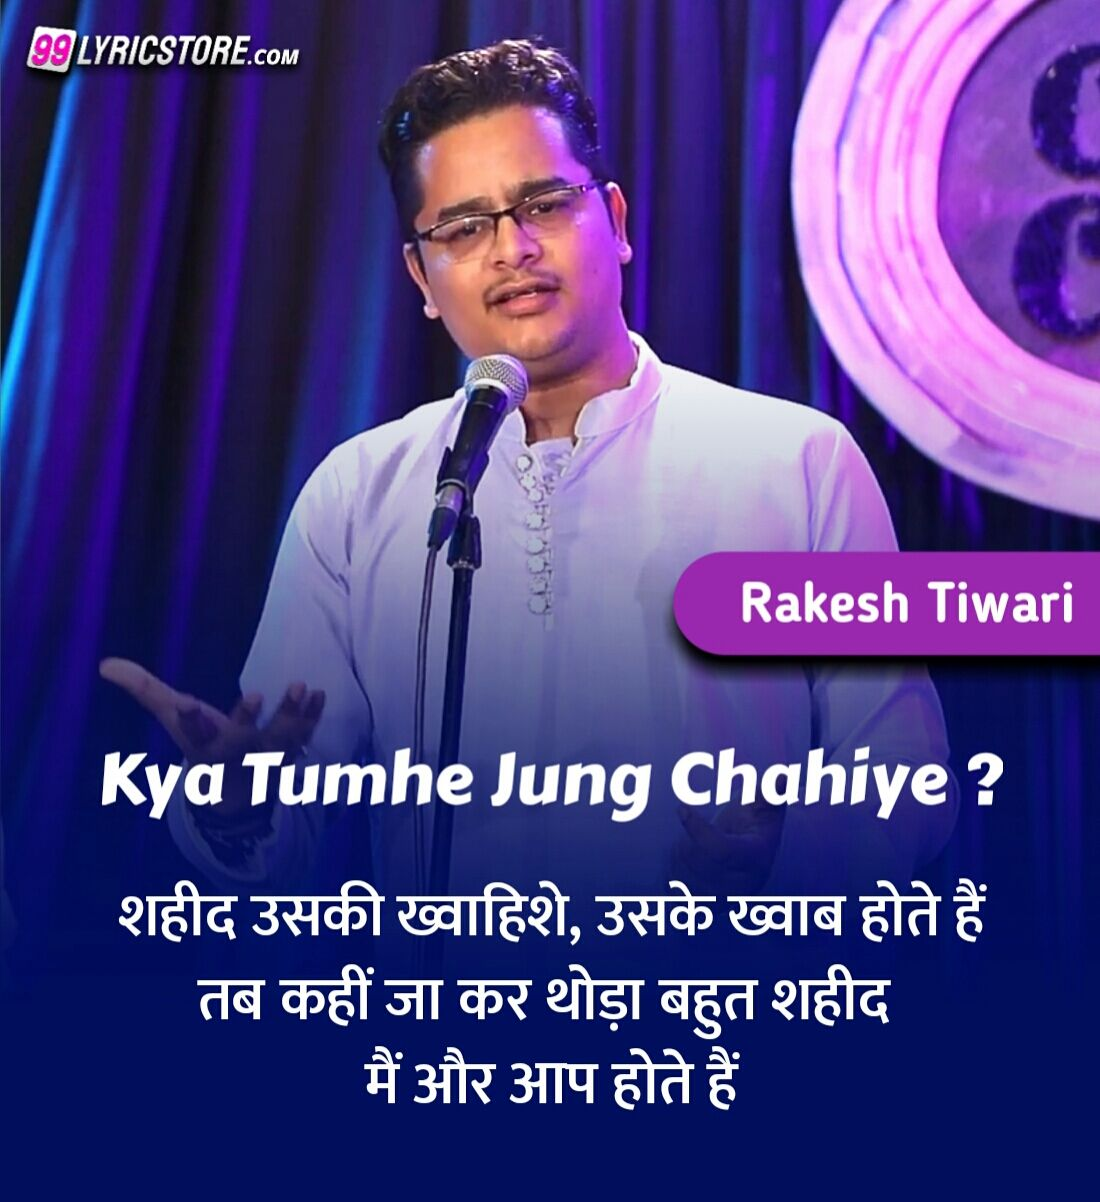 To Tumhe Jung Chahiye' Poetry has written and performed by Rakesh Tiwari. Shots at Cuckoo Club Bandra.